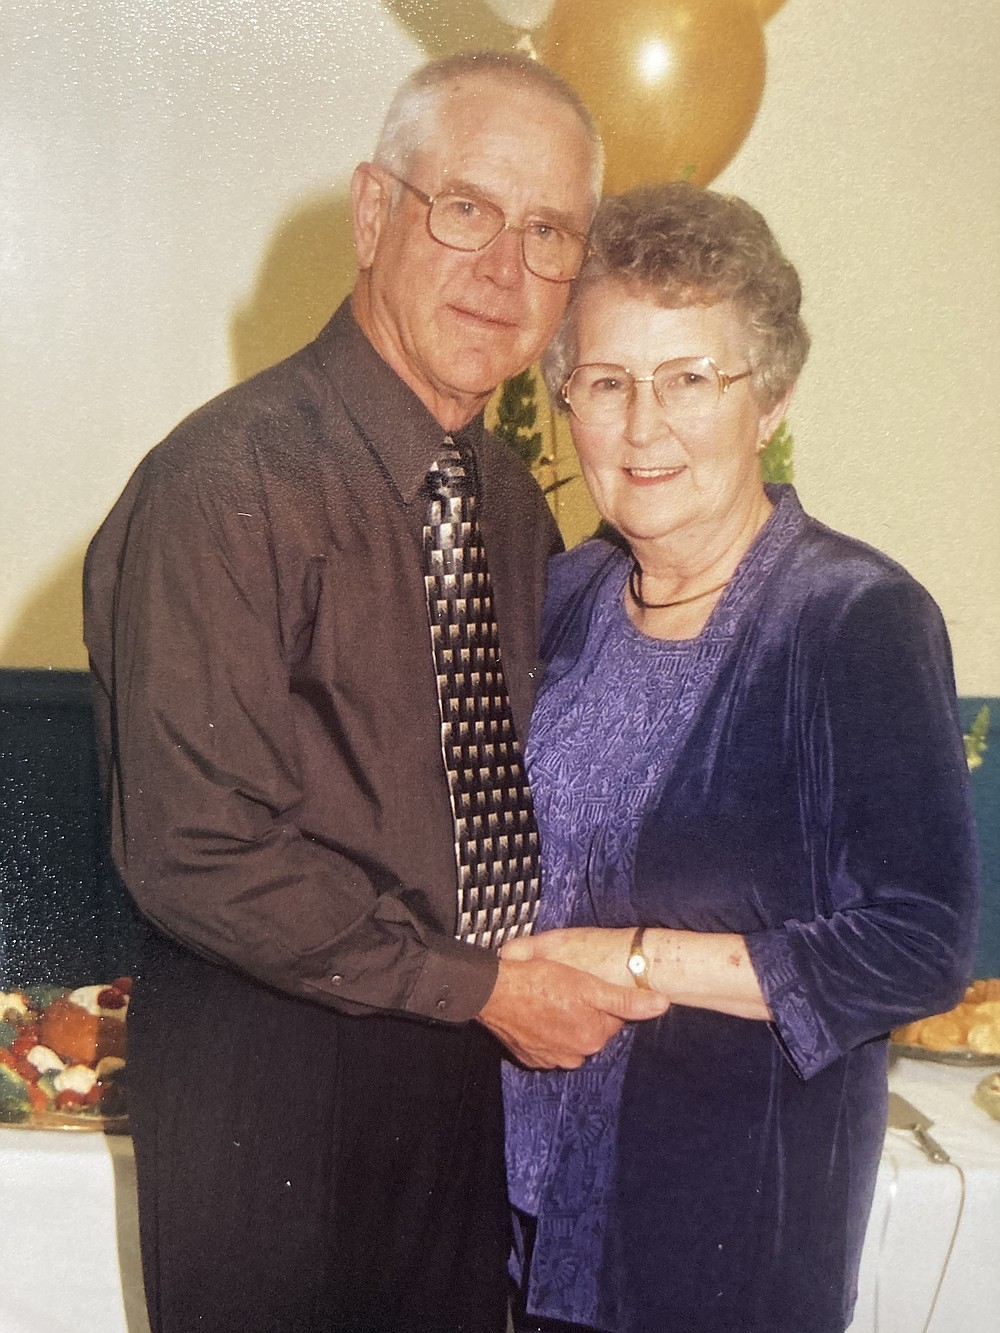 Harold and Dean Staton, shown here at their golden anniversary celebration 17 years ago, both died from covid this winter. (Special to the Commercial)